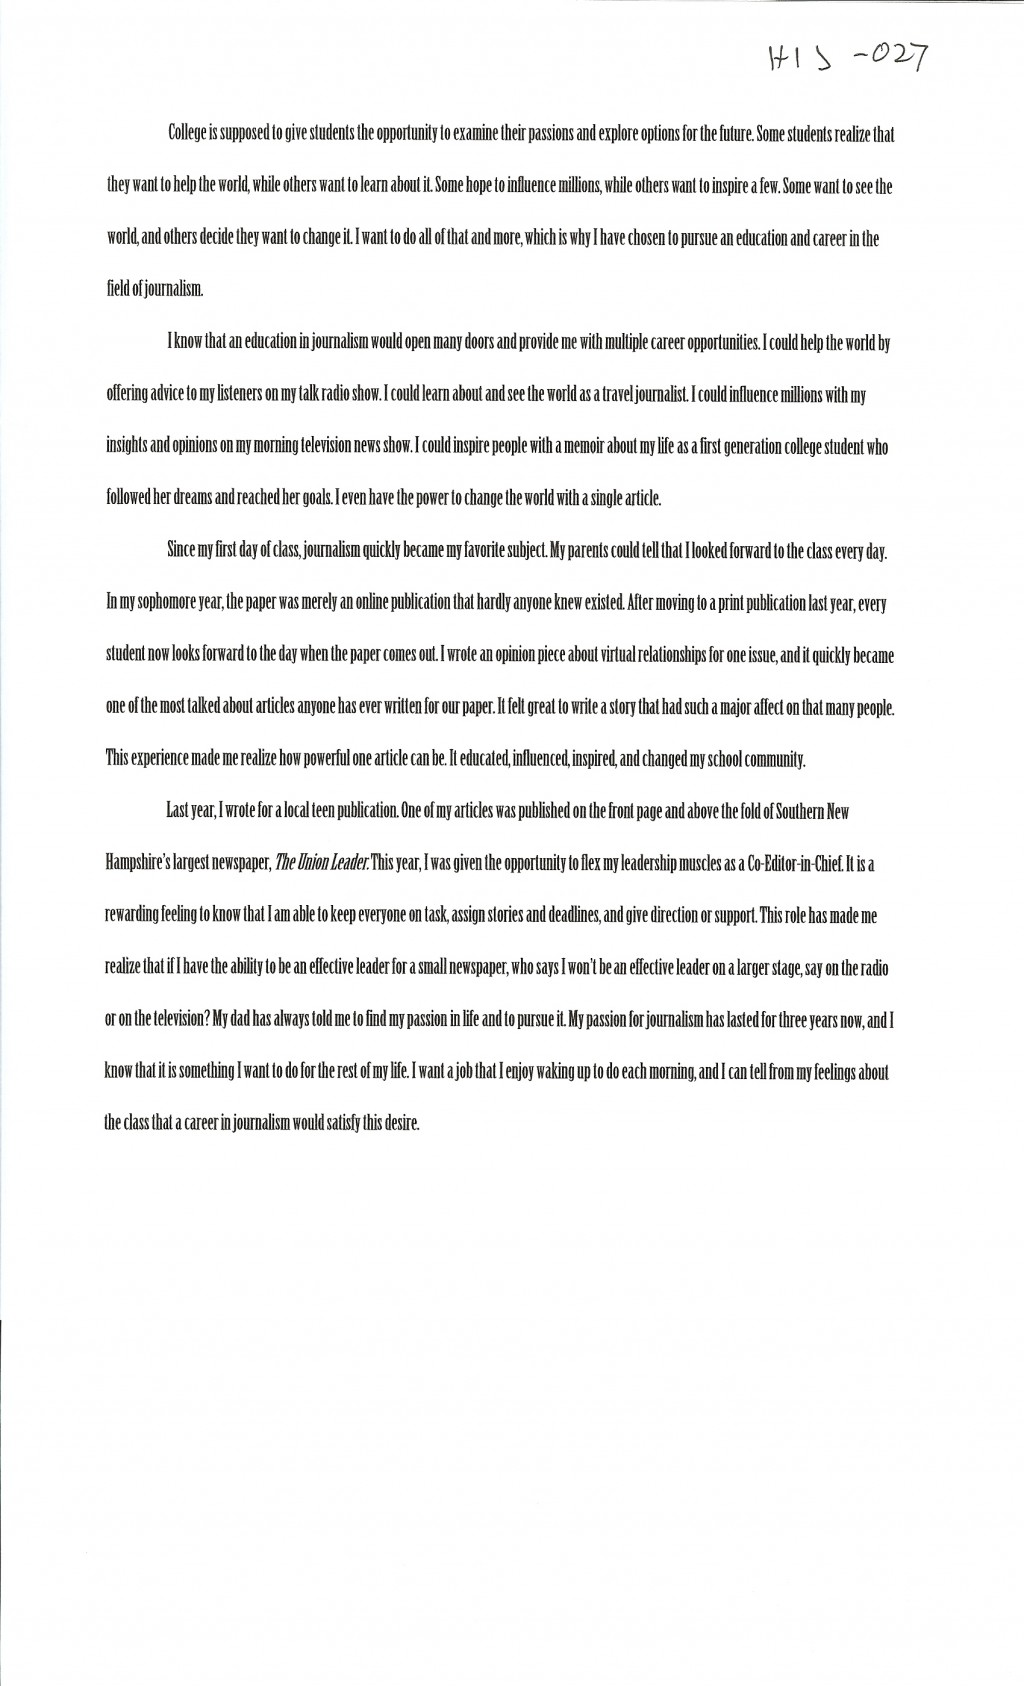 009 Examples Of Scholarship Essays Alexa Serrecchia Essay Remarkable For Nursing Writing College Students A About Yourself Large